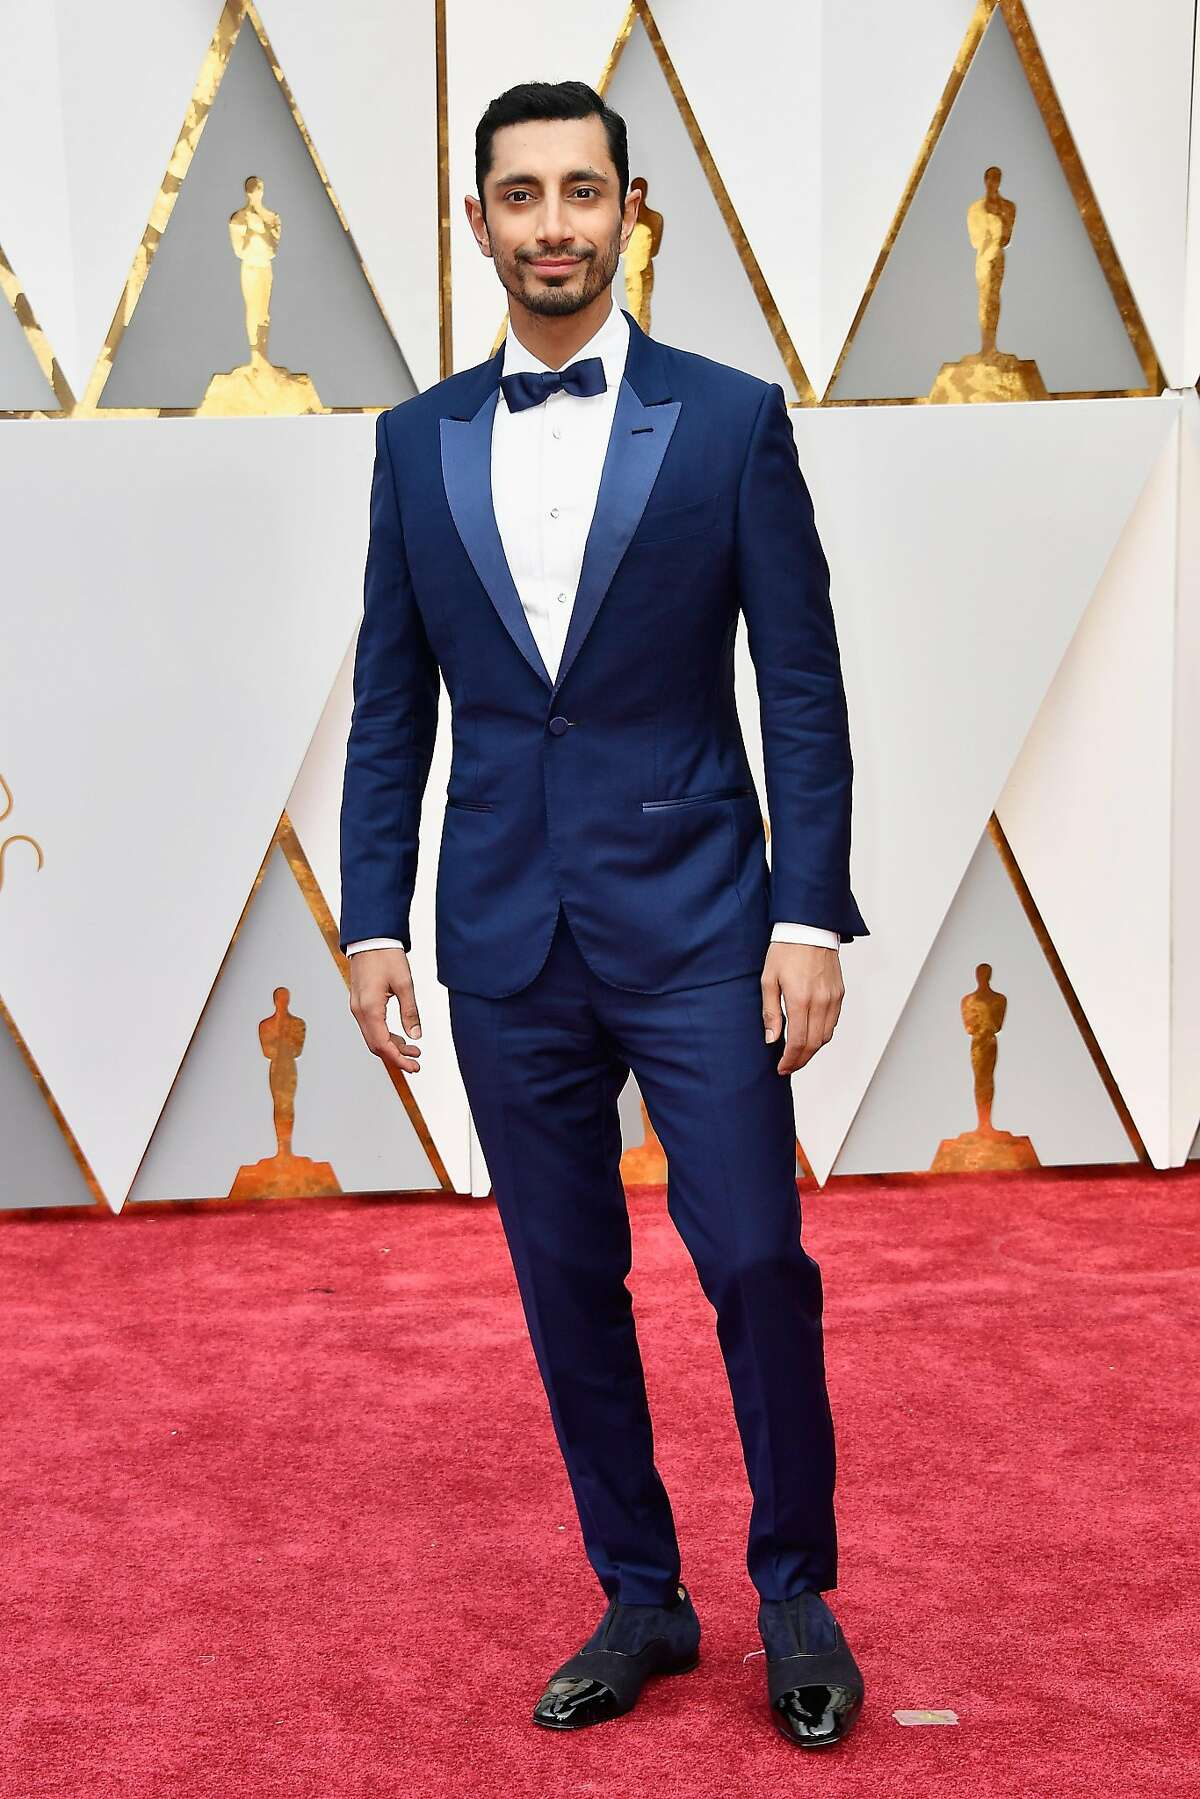 Riz Ahmed will play Dr. Carlton Drake. Pictured: Ahmed attends the 89th Annual Academy Awards at Hollywood & Highland Center on February 26, 2017 in Hollywood, California.